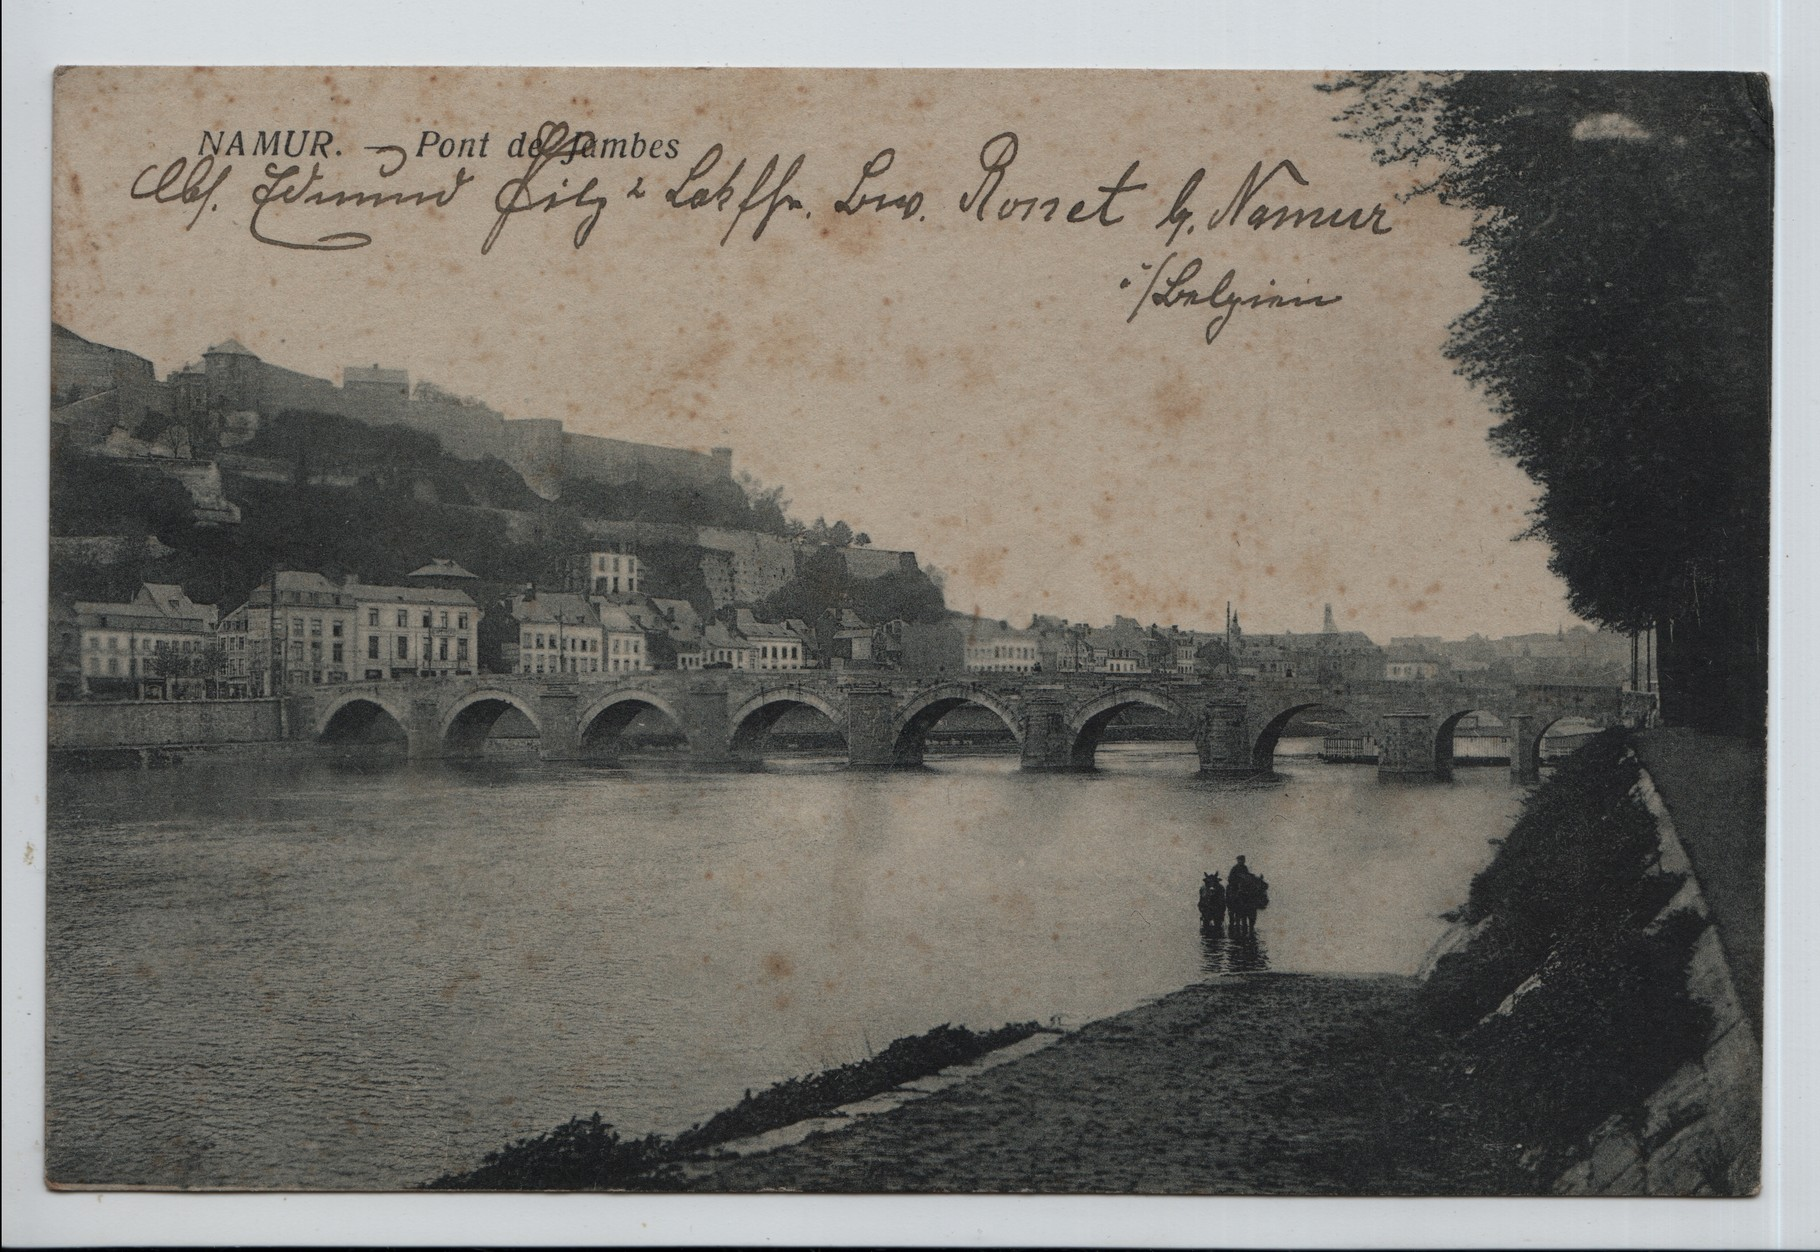 7. Bridge at Namur